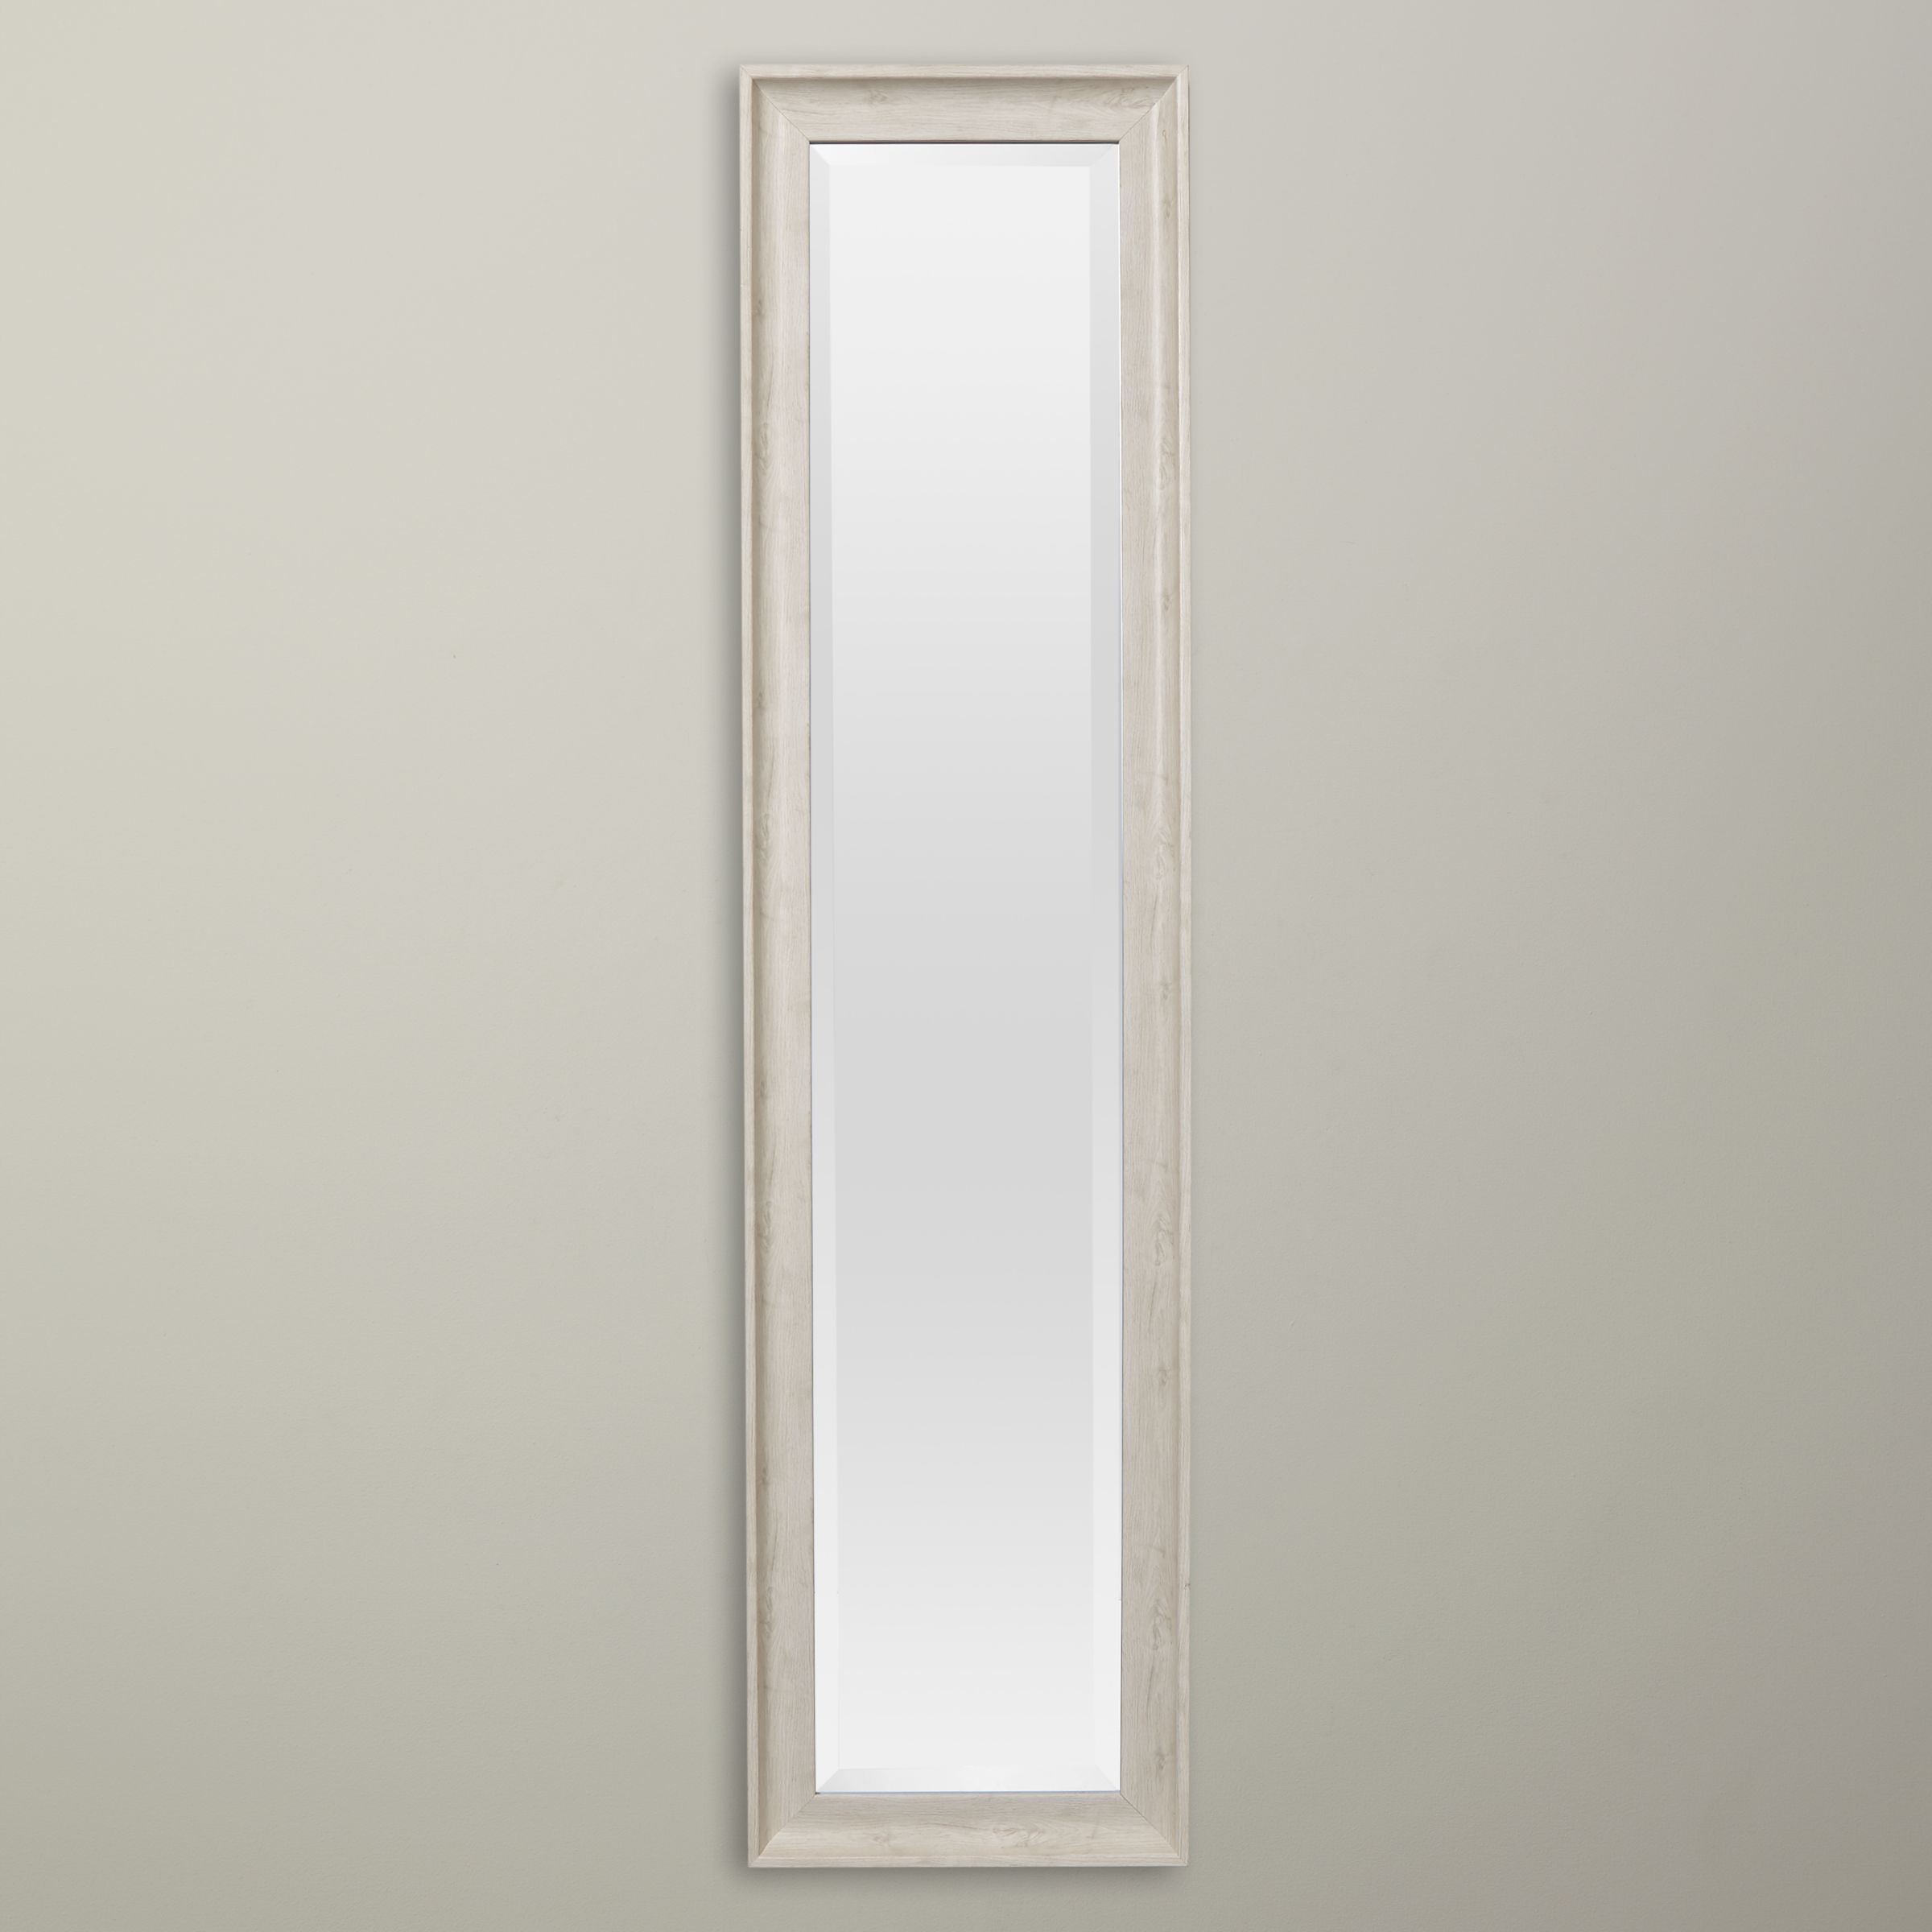 70ee0494177d John Lewis & Partners Coastal Texture Full Length Mirror, 120 x 40cm, White  at John Lewis & Partners